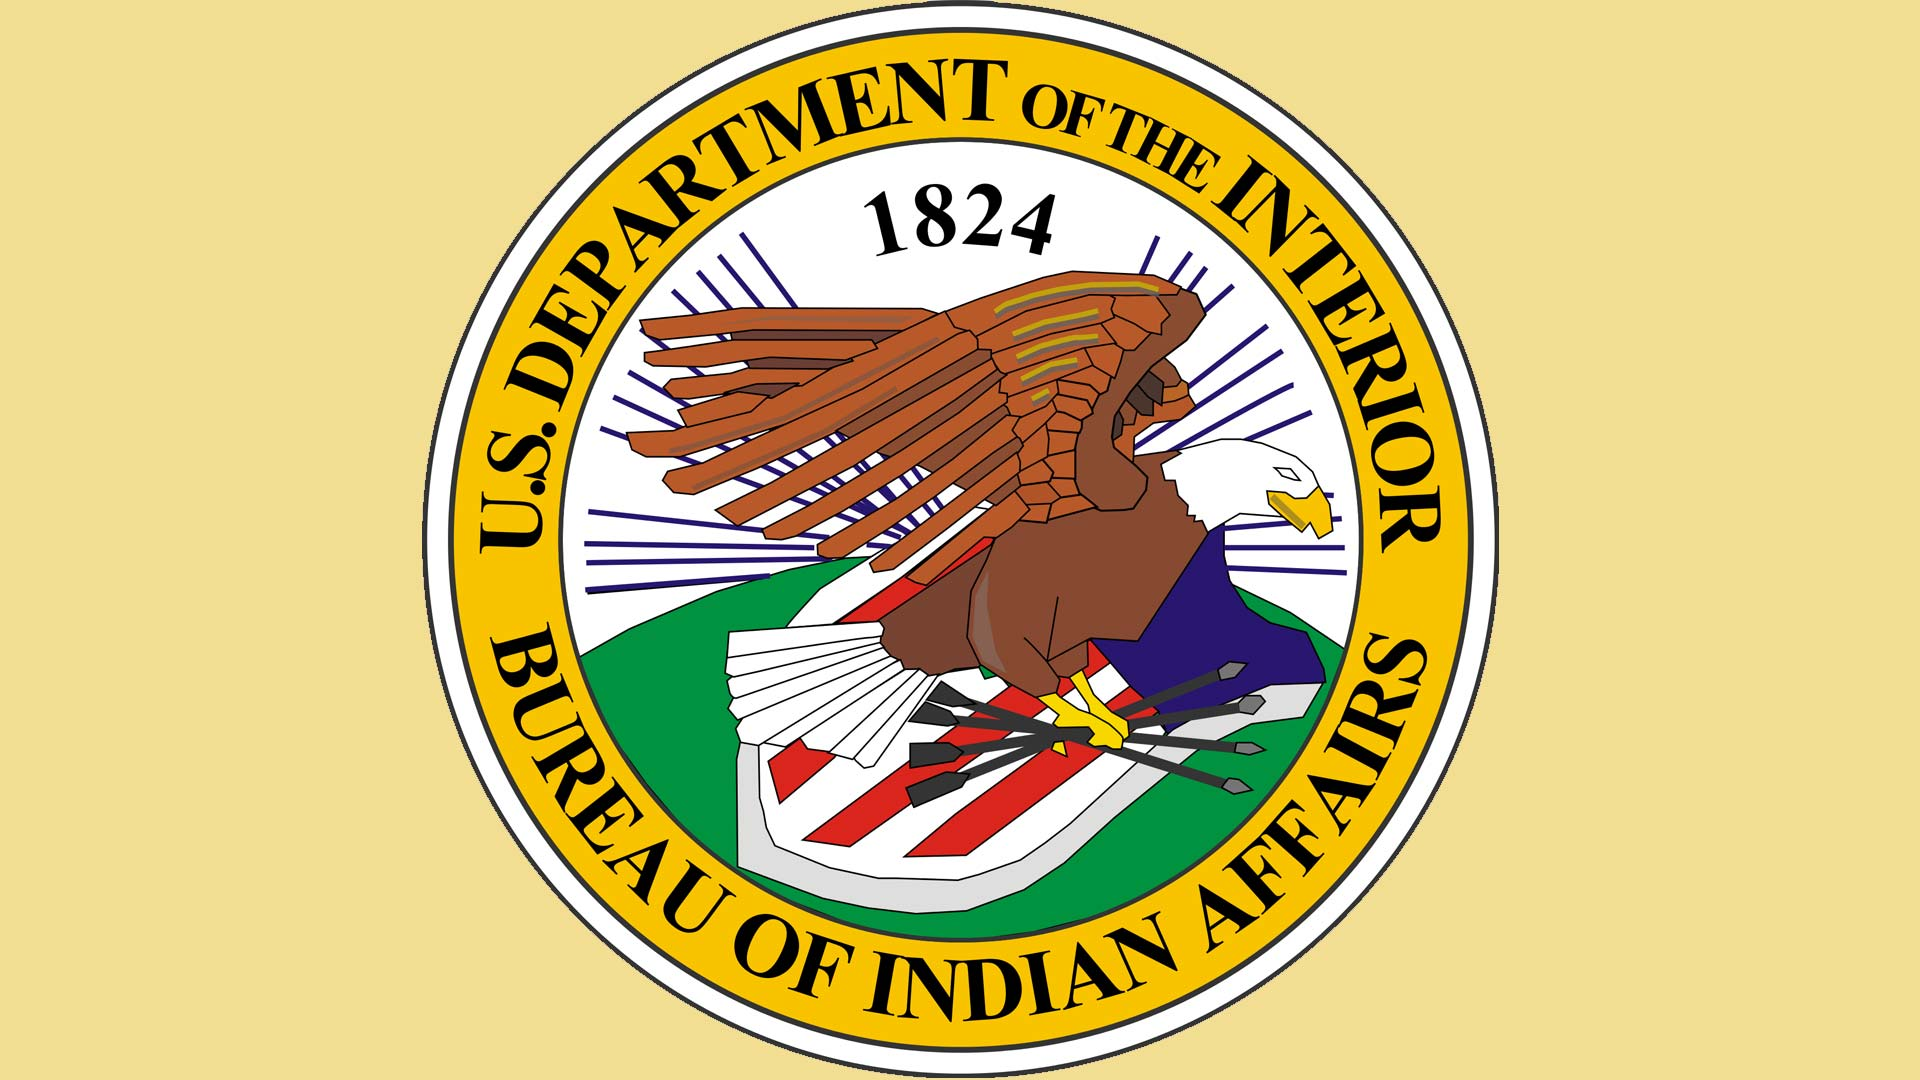 Seal of the Bureau of Indian Affairs.